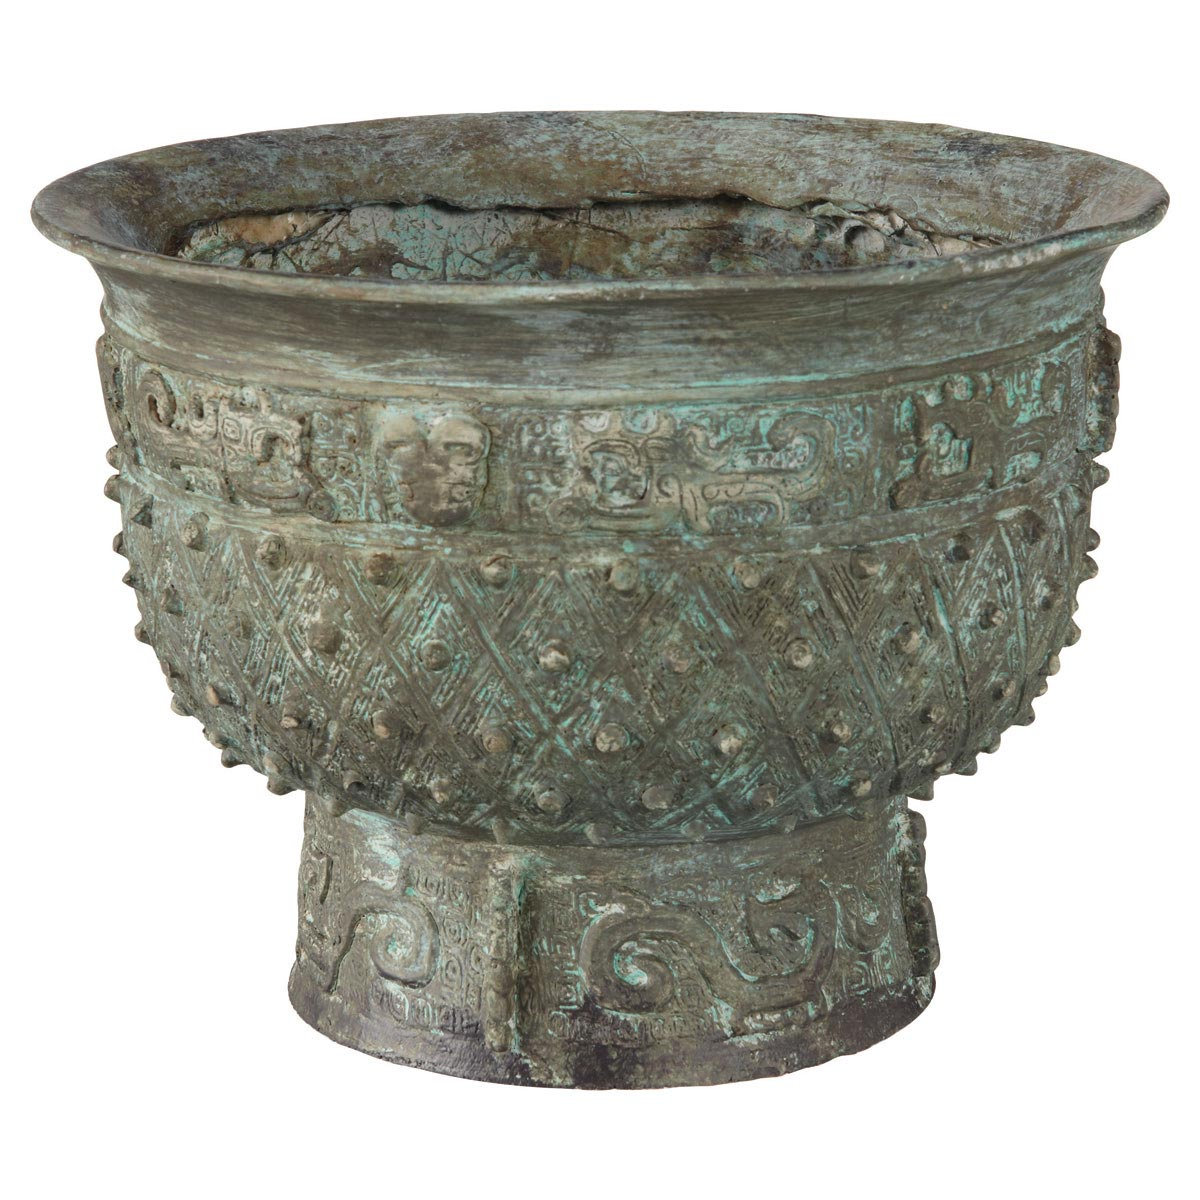 Colorful Verdigris Planter In Unique Design : Antique Ornamental Verdigris Planter Design With Empty Flowers